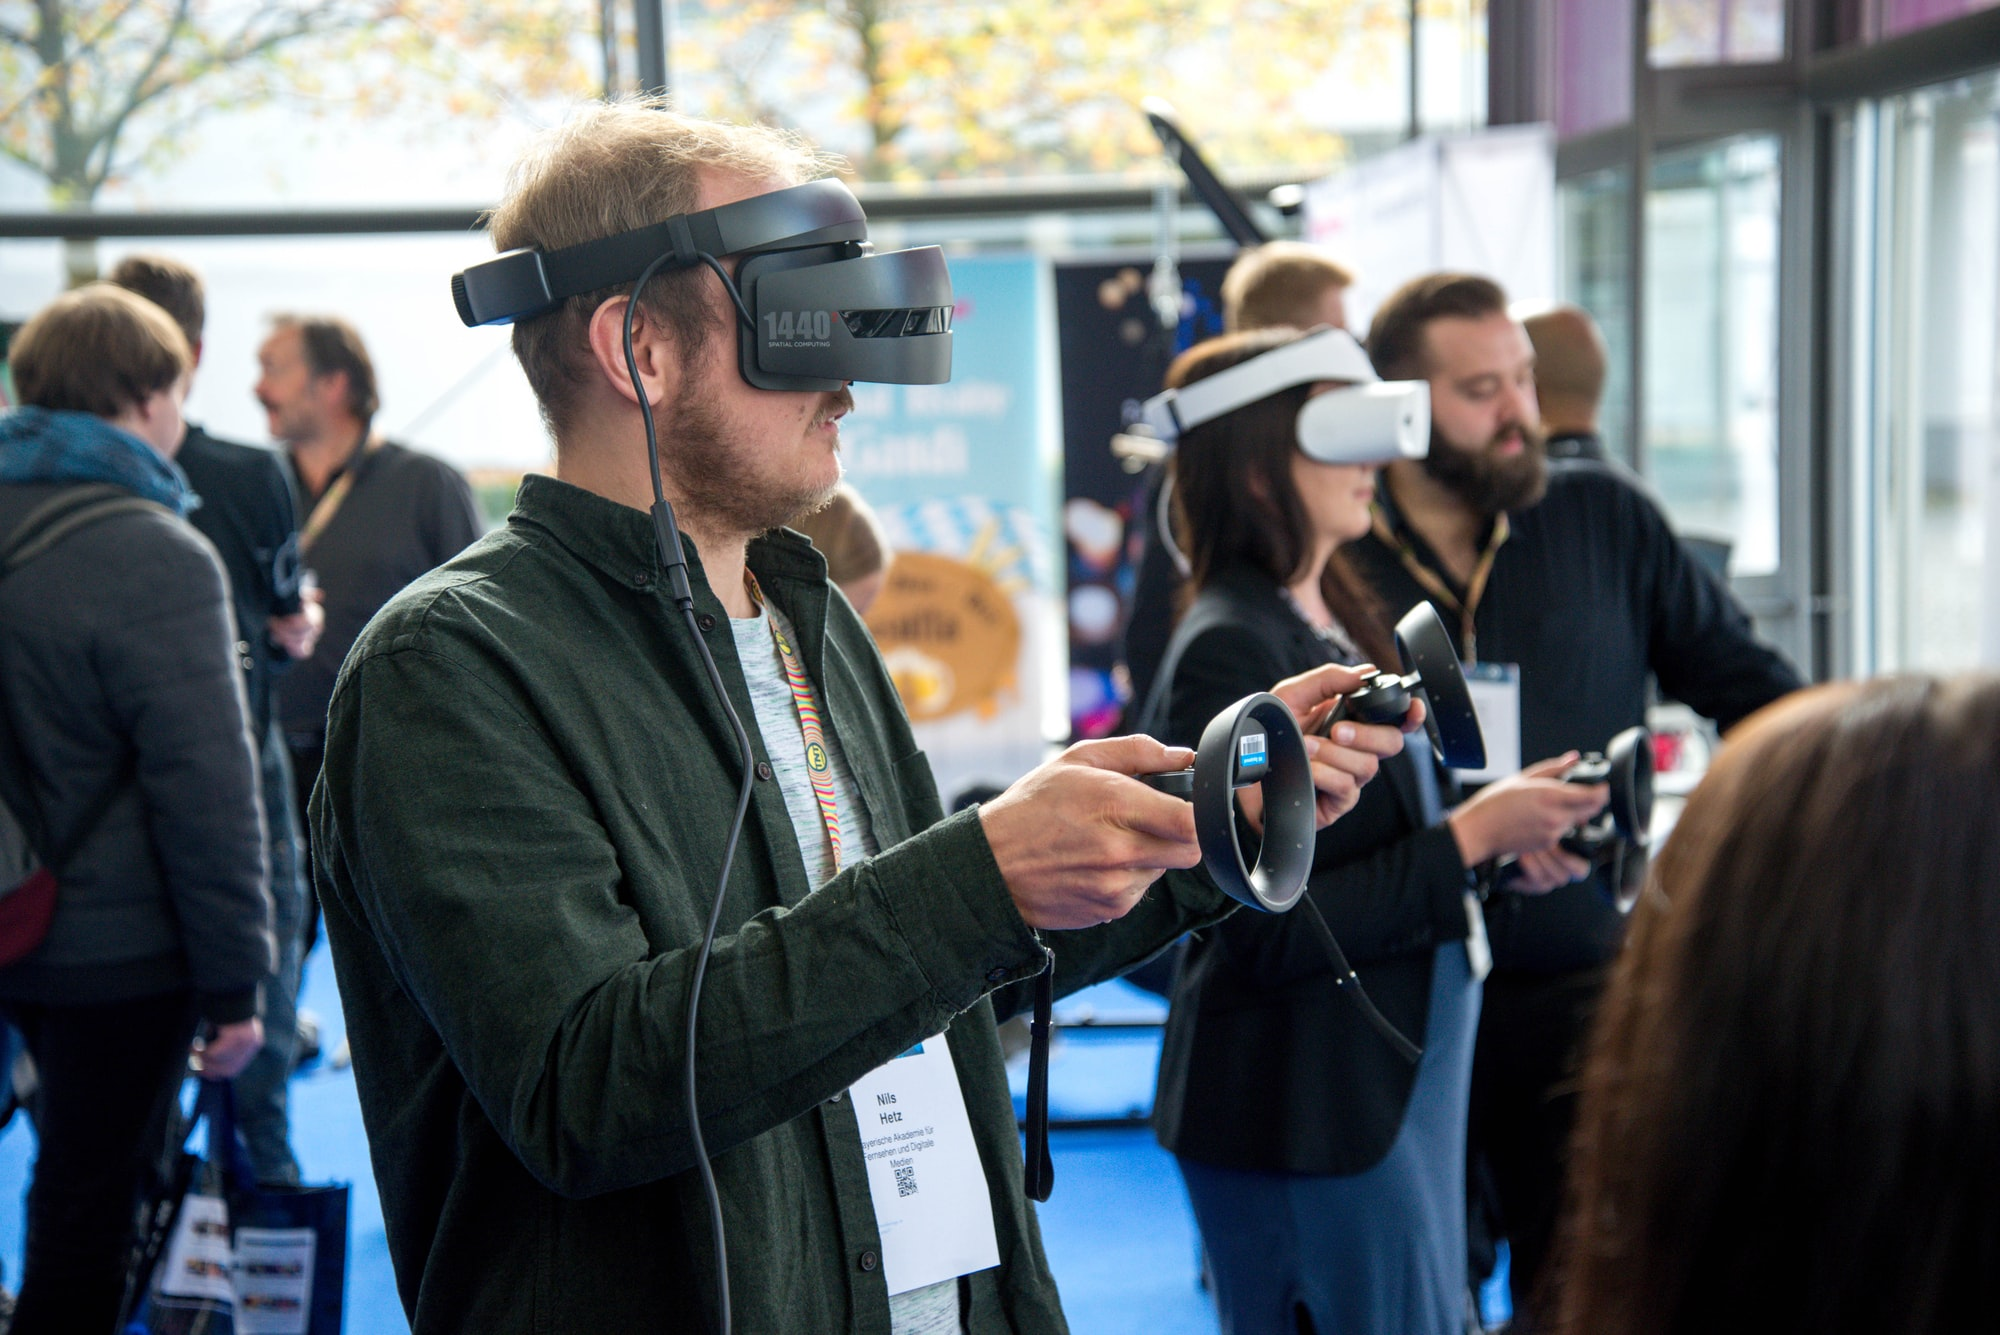 Marketing VR apps: lessons from Facebook's experiences